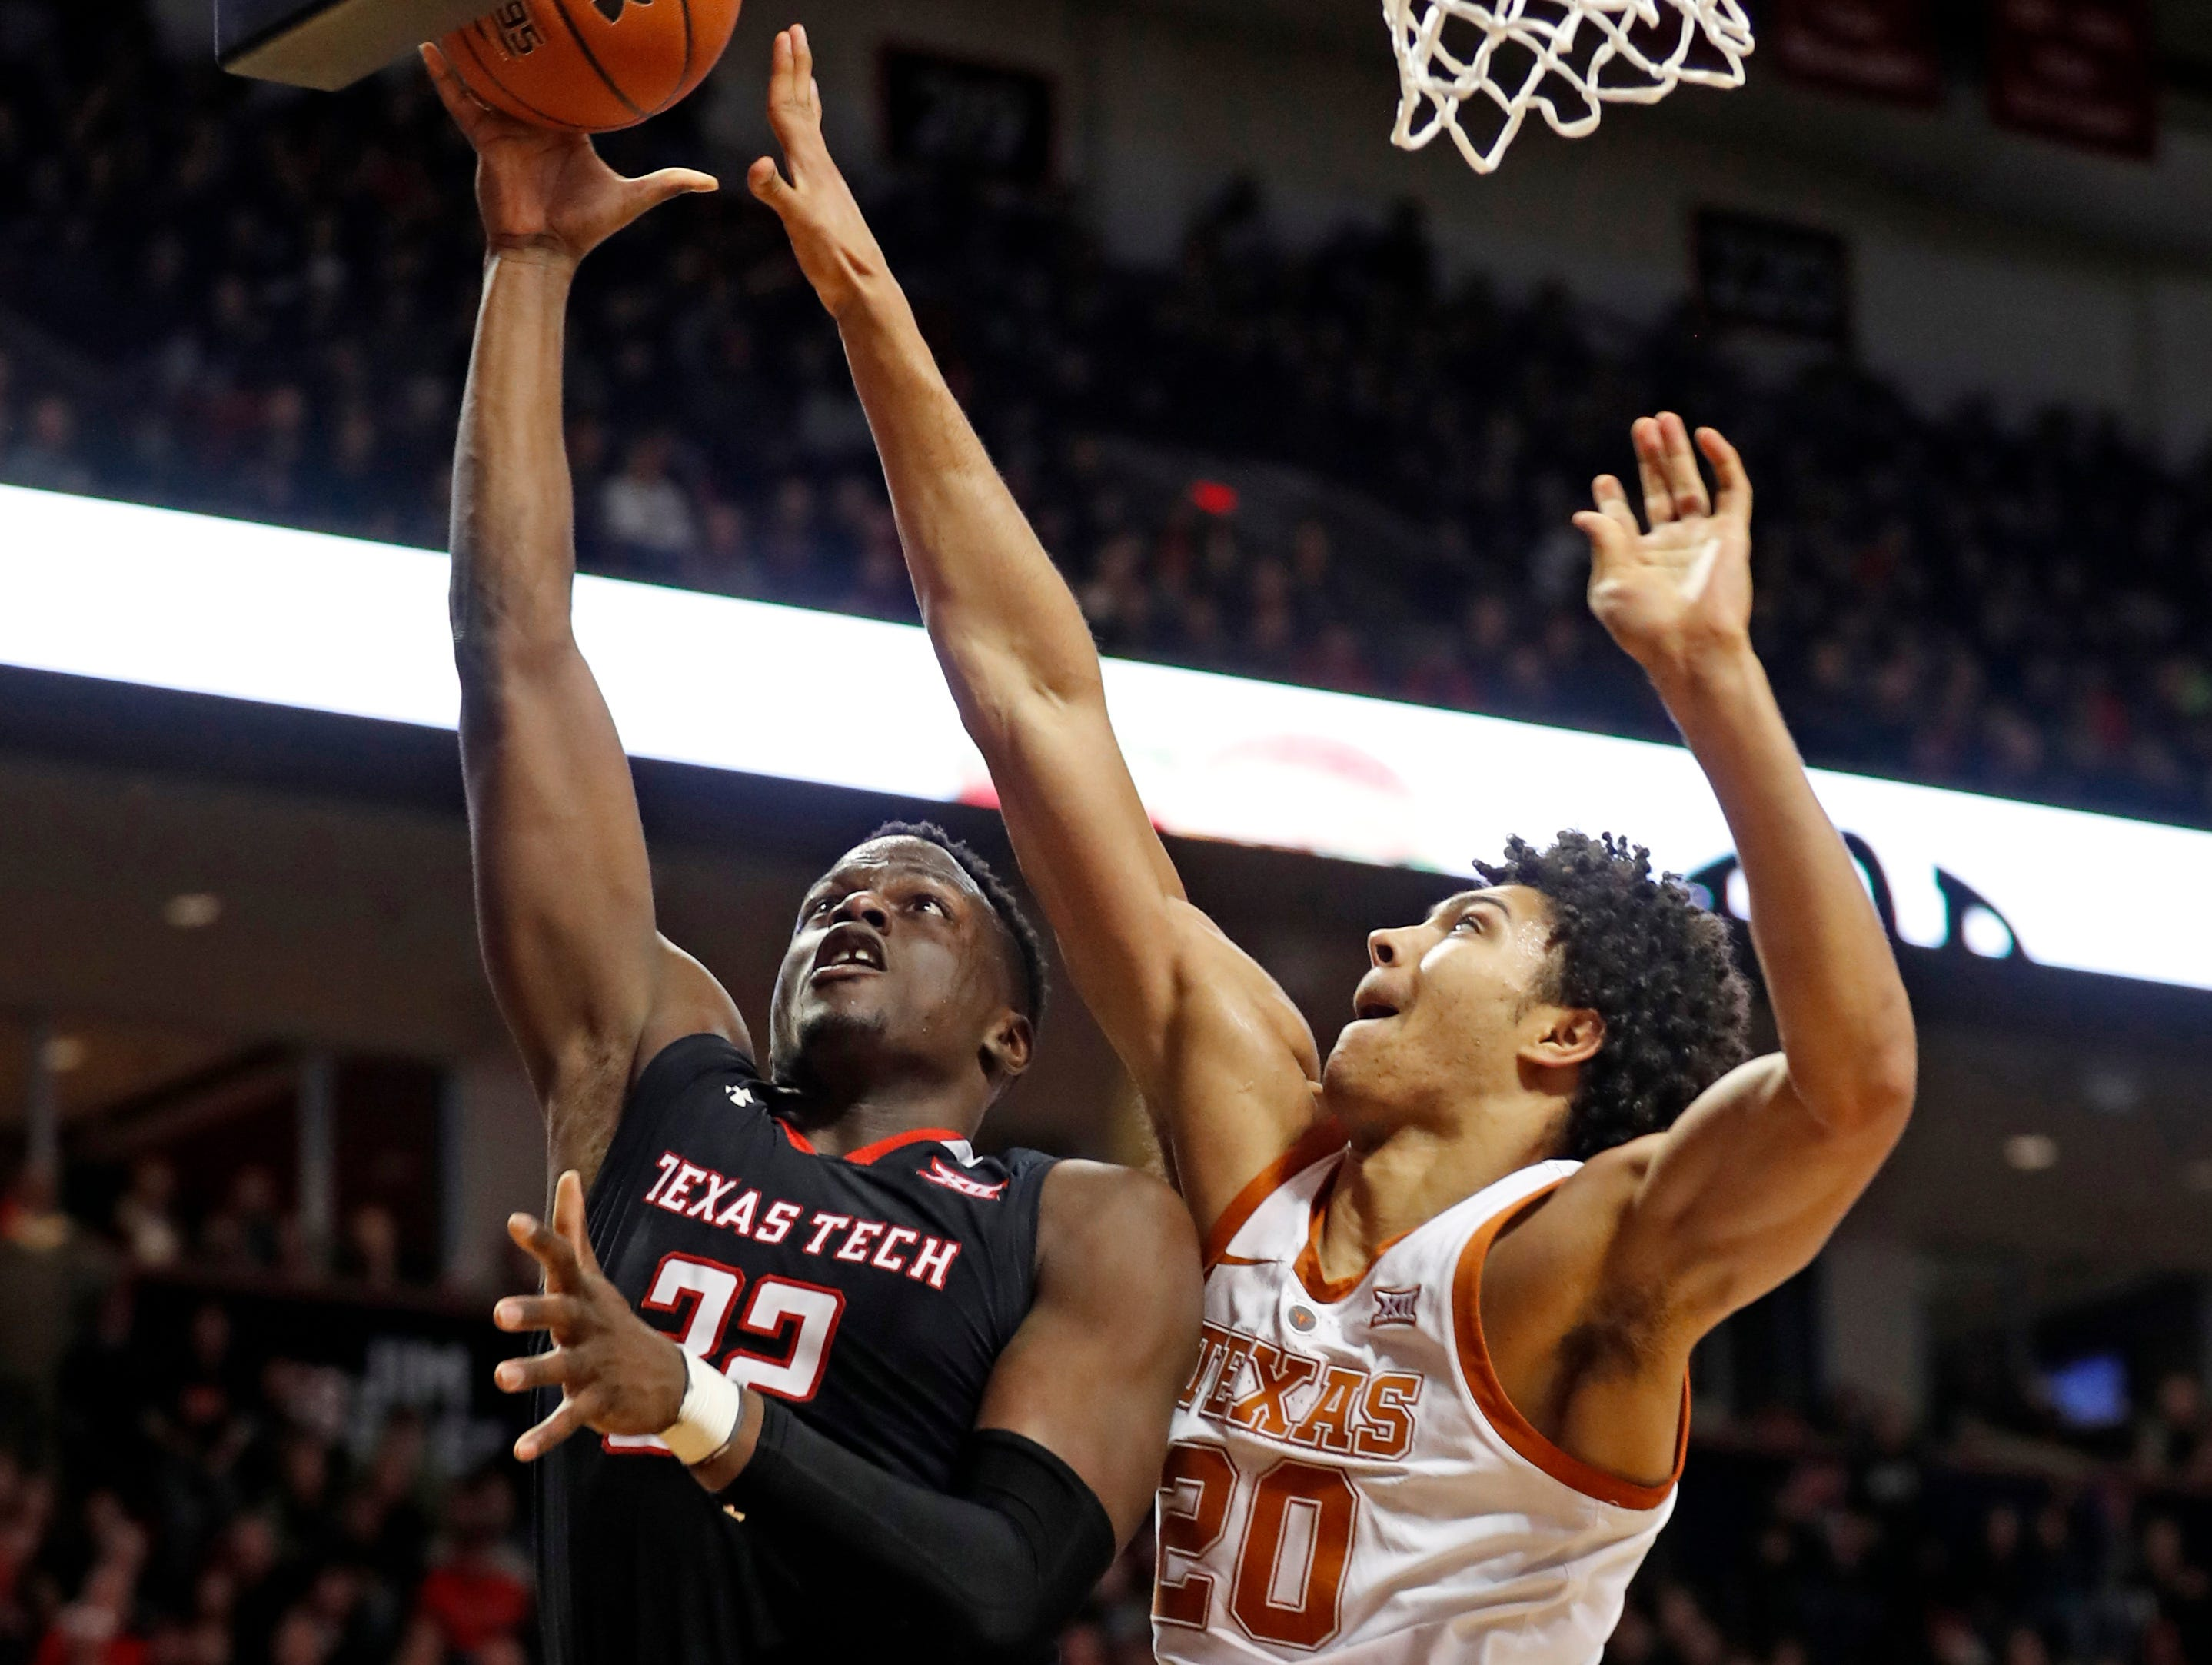 Texas Tech's Norense Odiase (32) shoots the ball over Texas' Jericho Sims (20) during the second half of an NCAA college basketball game, Monday, March 4, 2019, in Lubbock, Texas. (AP Photo/Brad Tollefson)